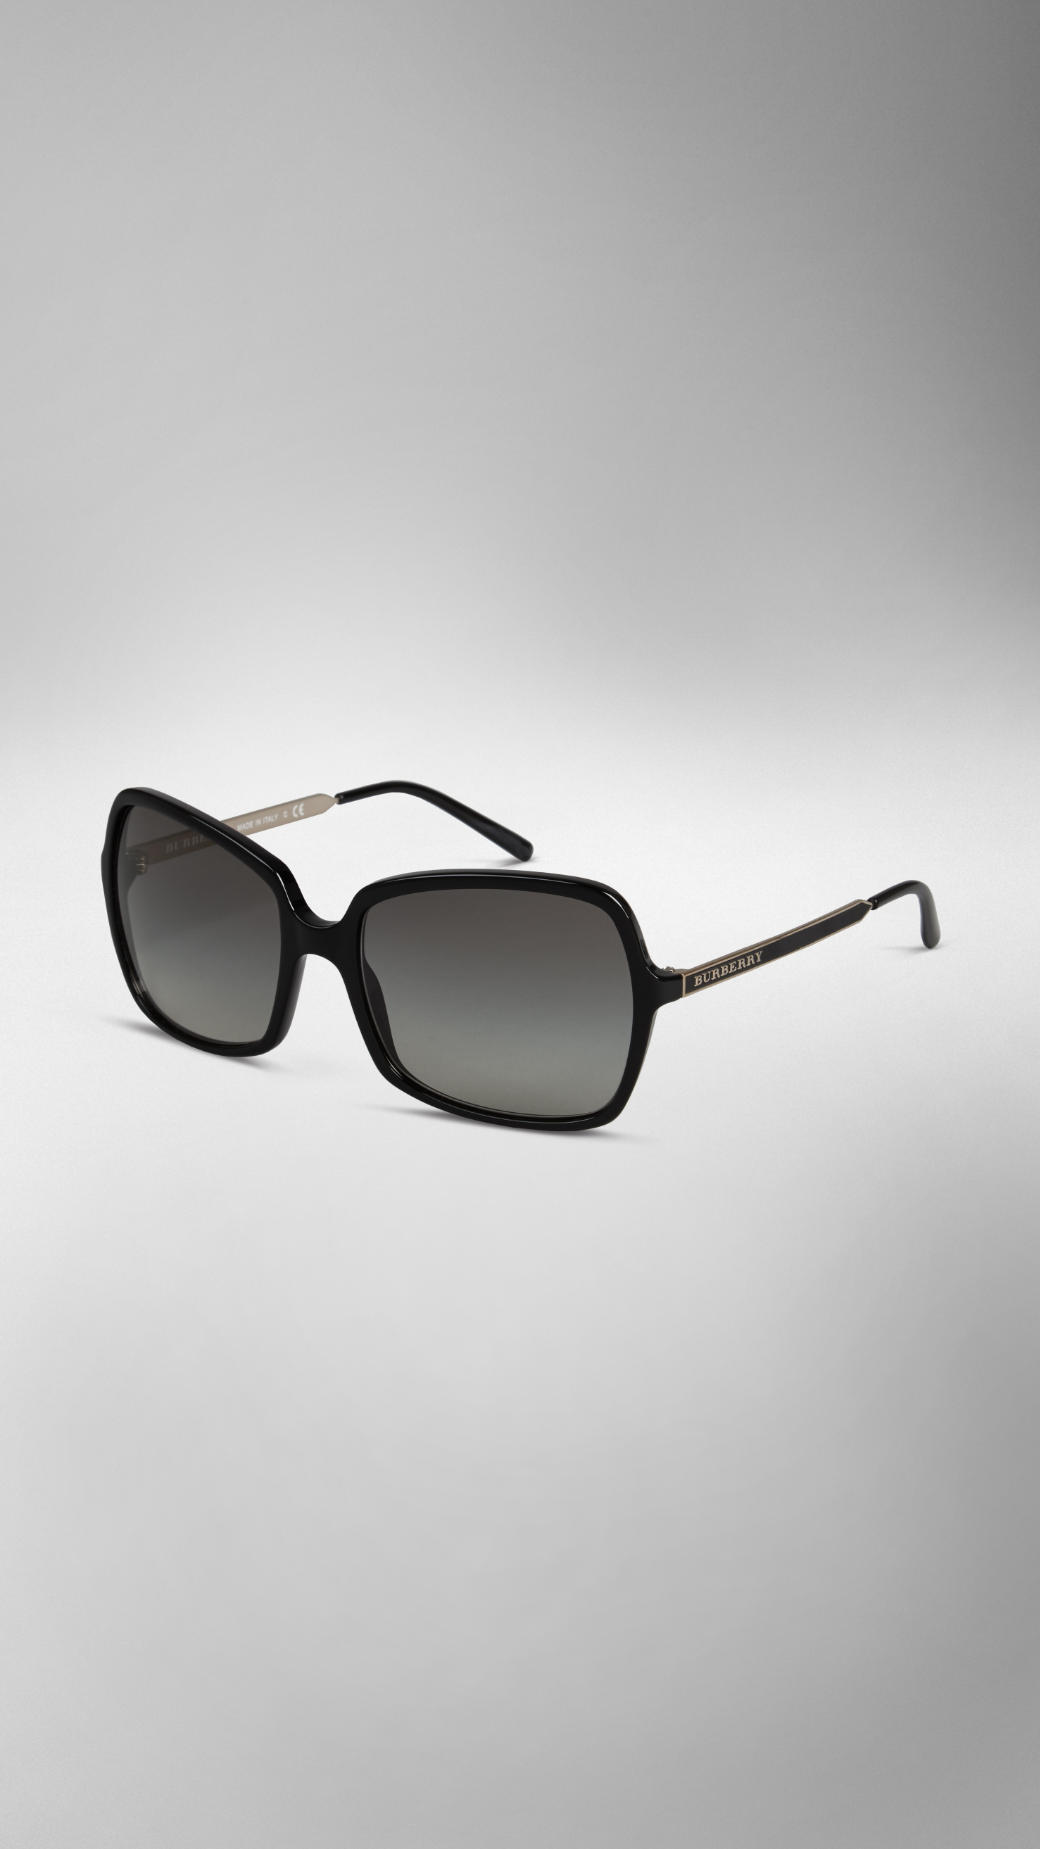 f86a0bab131c Lyst - Burberry Square Frame Acetate Sunglasses in Black